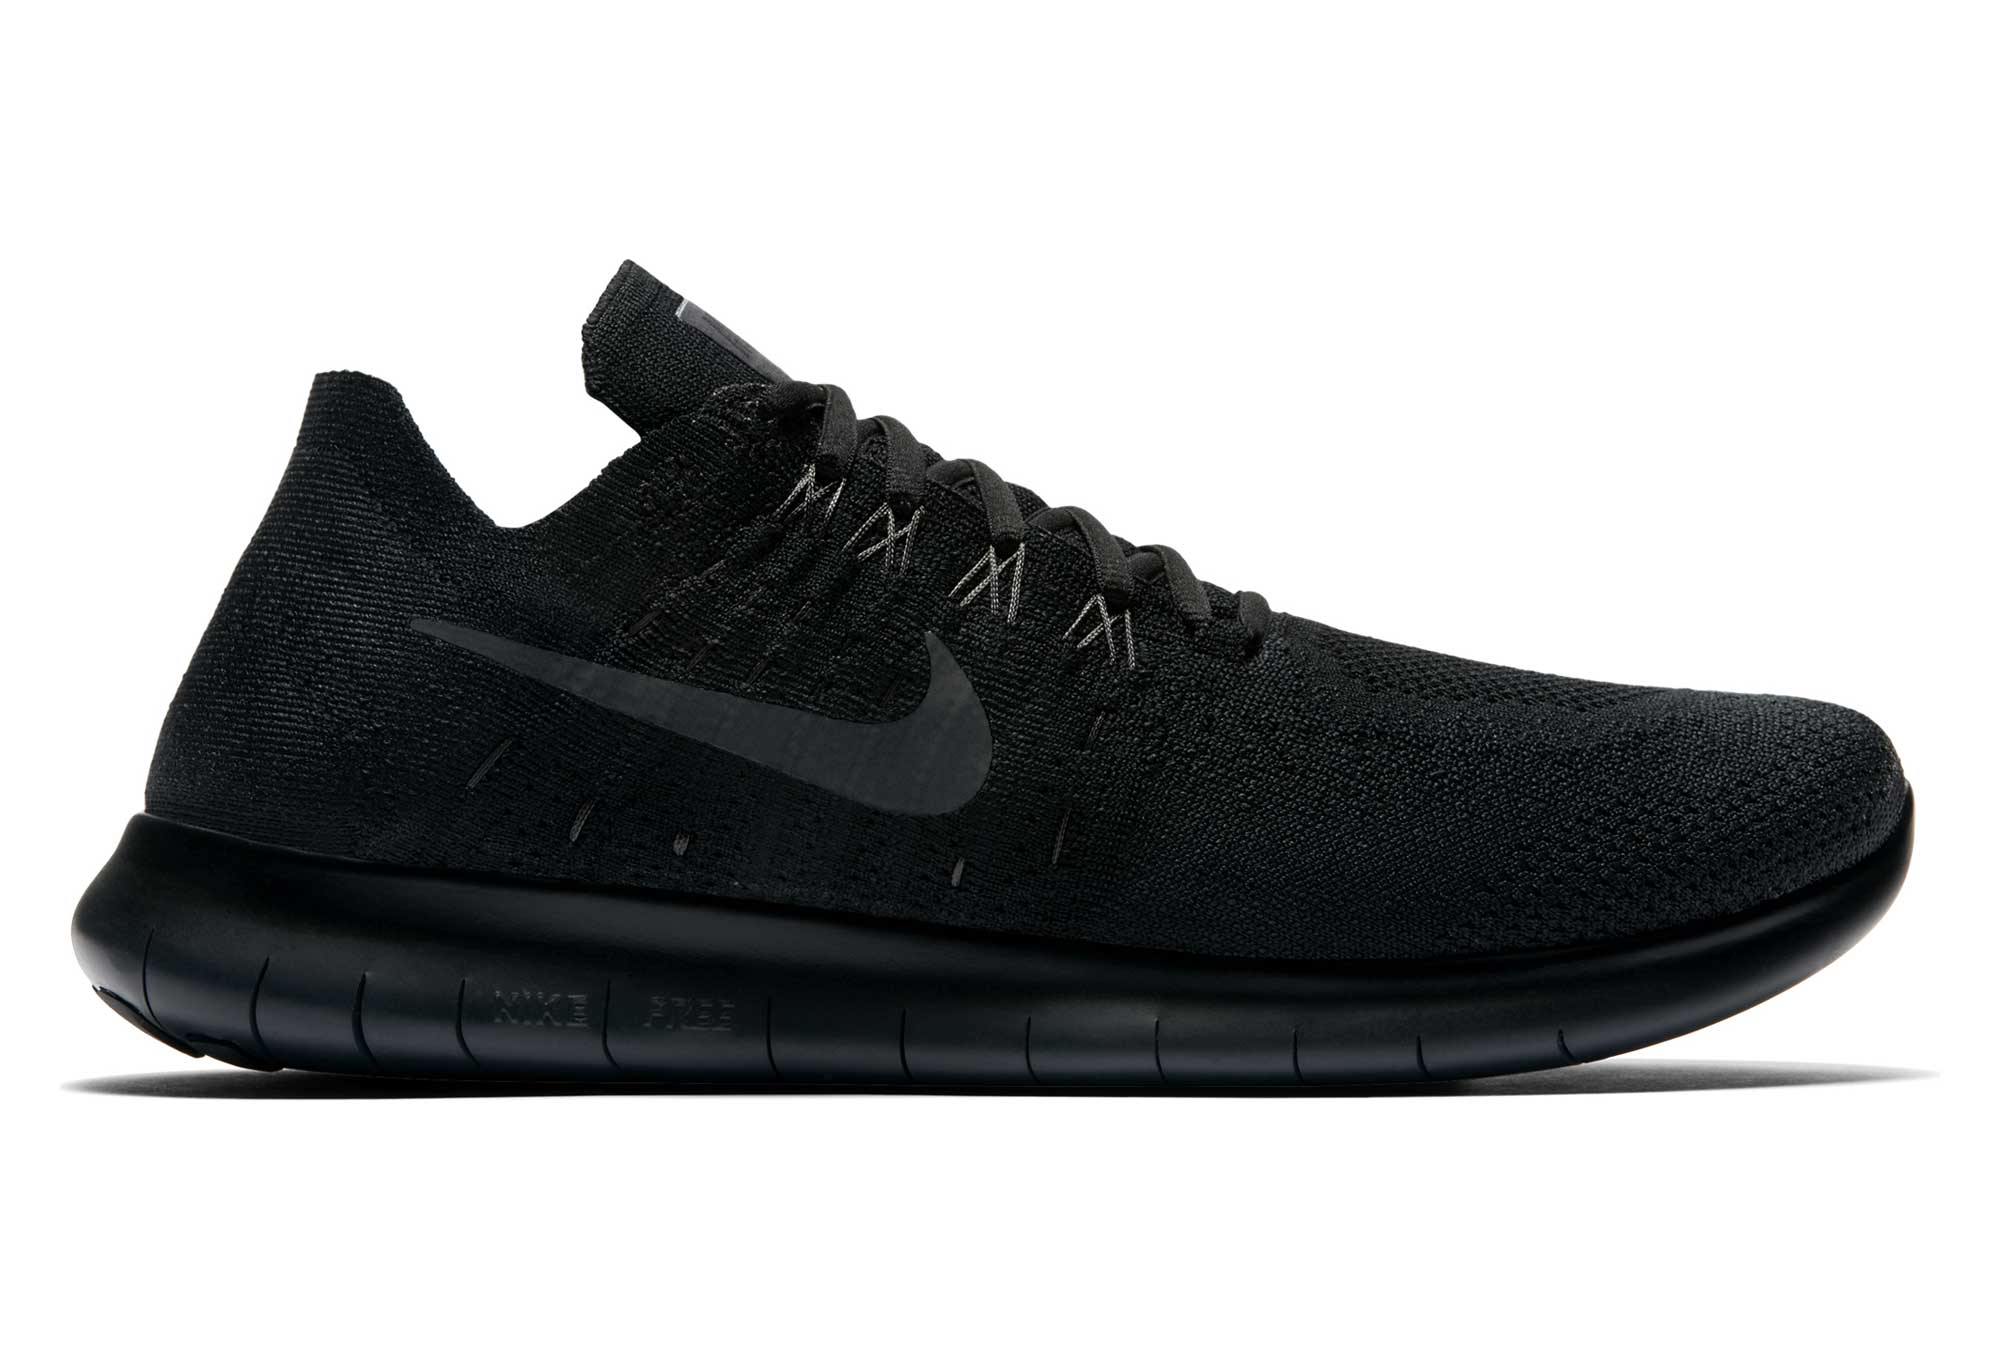 pretty nice 22ab8 0bc1a Zapatillas de running para mujer Nike Free RN Flyknit 2017 Negro Gris  antracita